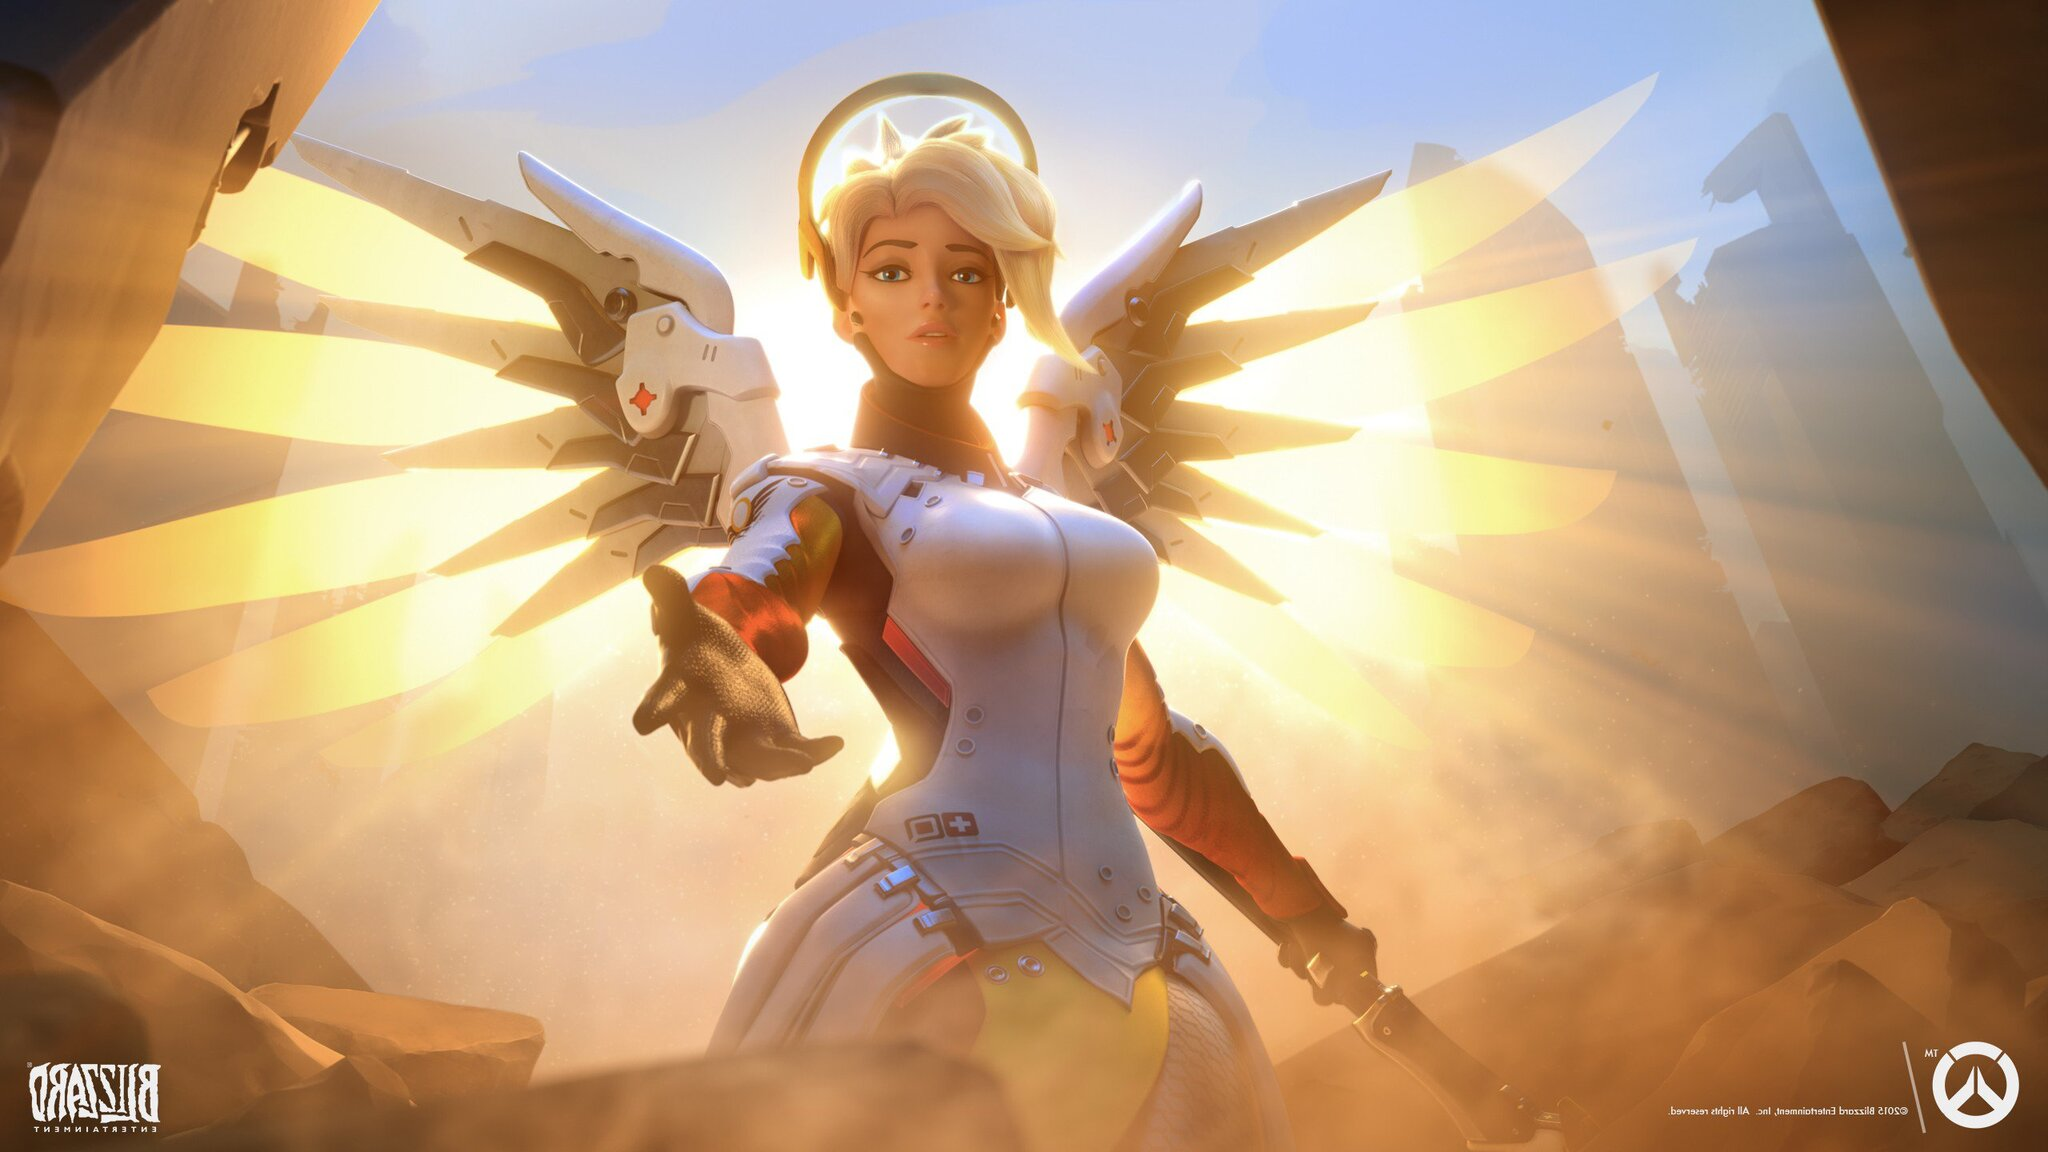 3d Wallpaper Of Cars And Bikes 2048x1152 Mercy Overwatch 2048x1152 Resolution Hd 4k